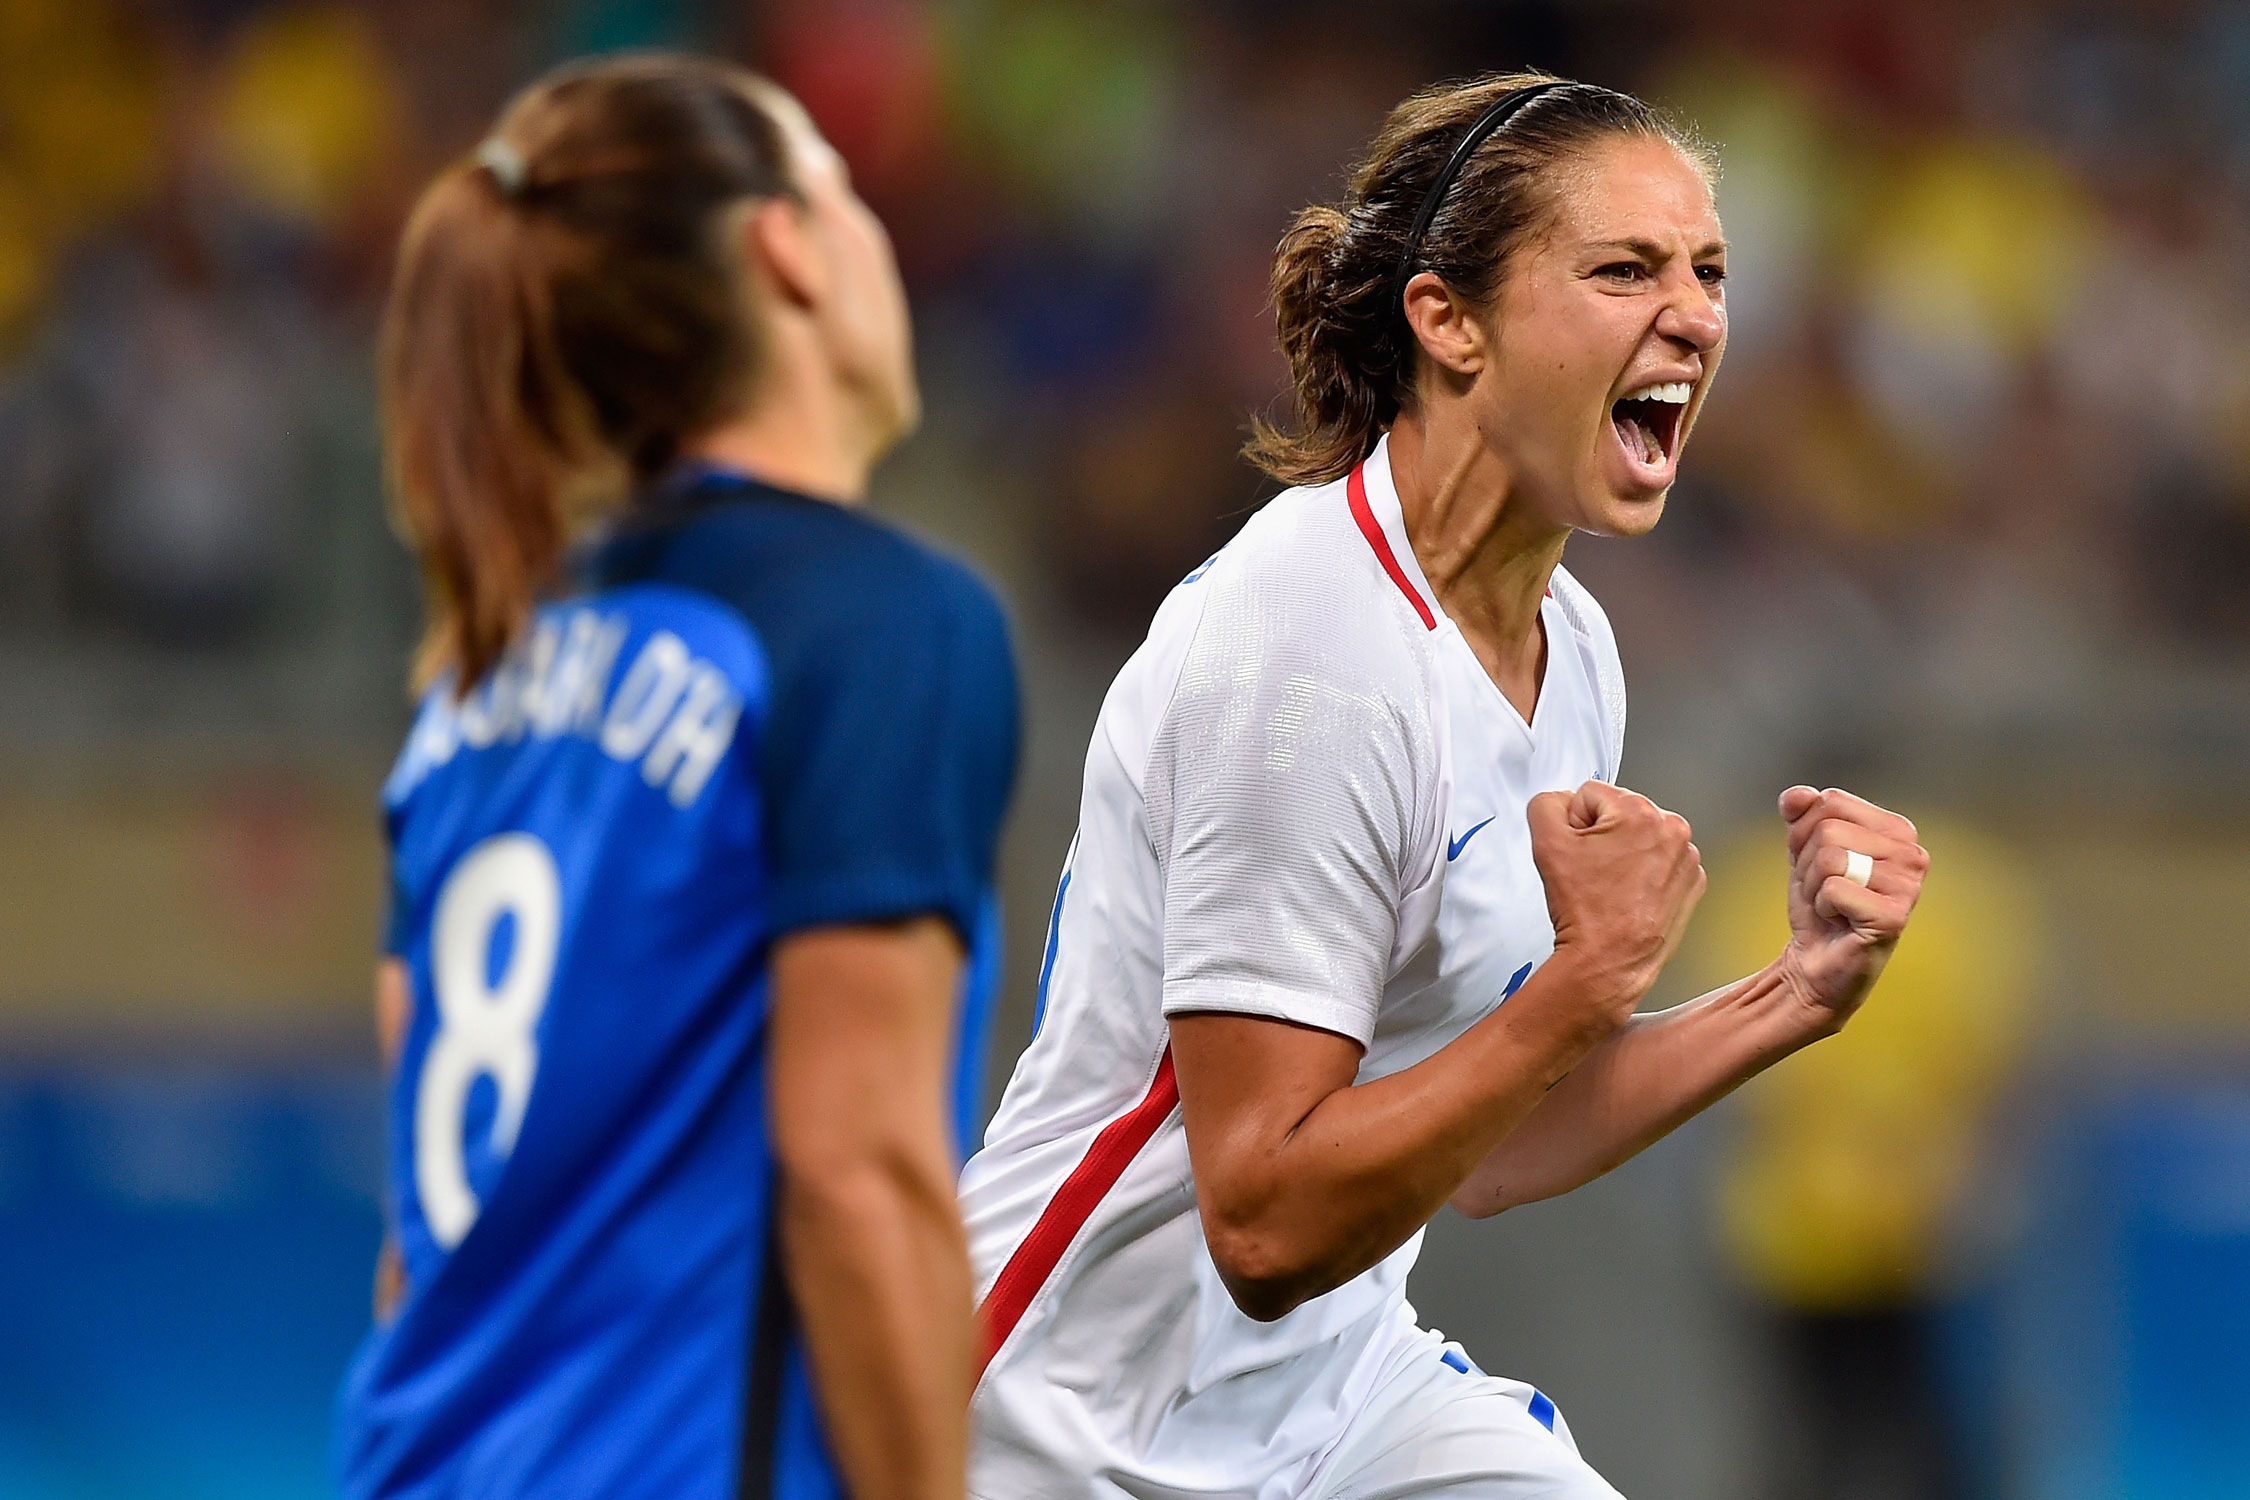 Carli Lloyd scores the only goal in a 1-0 win over a stout France side to punch the USA's ticket to the knockout stage at the Olympics.